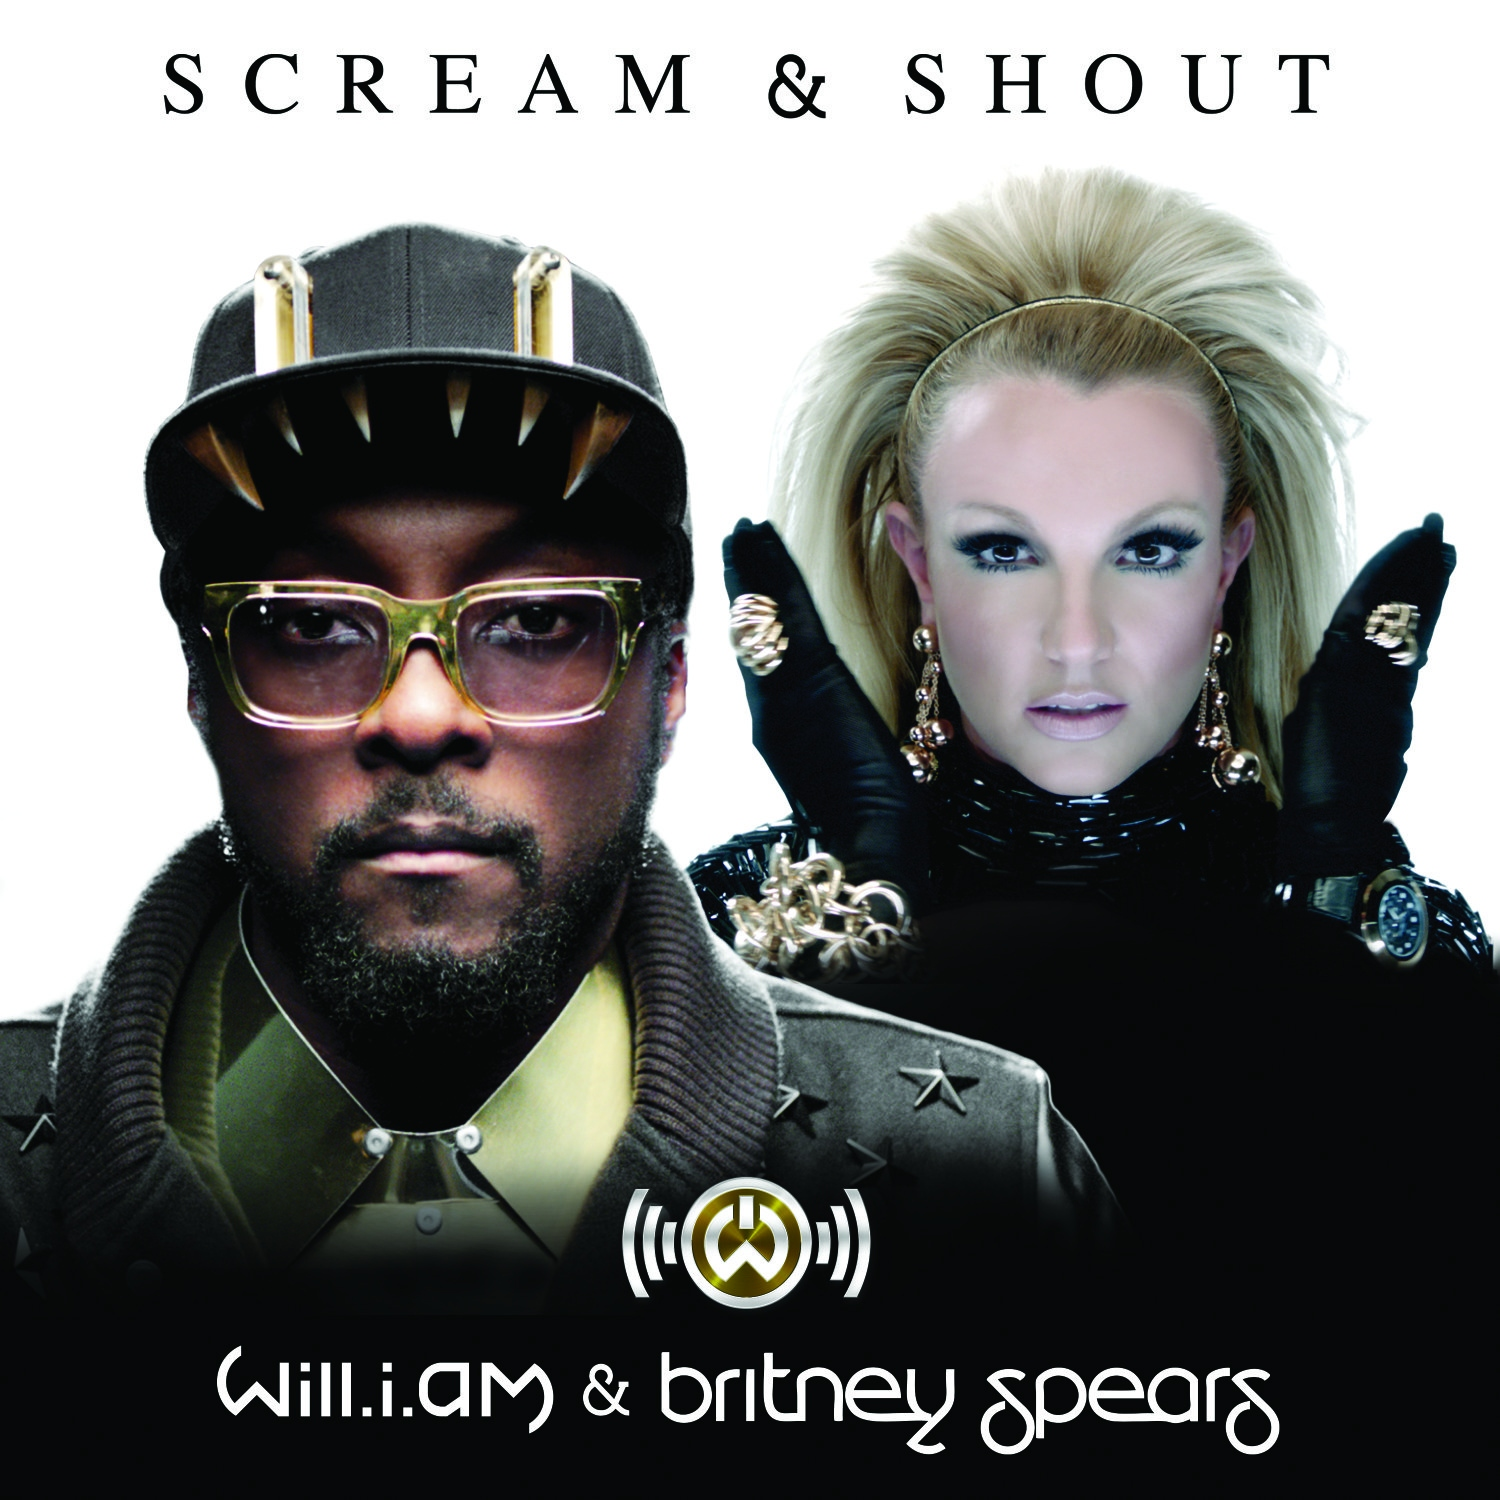 http://3.bp.blogspot.com/-PQ_1P1azwAo/URVif3kiwZI/AAAAAAAAErA/eOLa8pbdJCs/s1600/will_i_am_and_britney_spears_cover_scream_and_shout.jpg